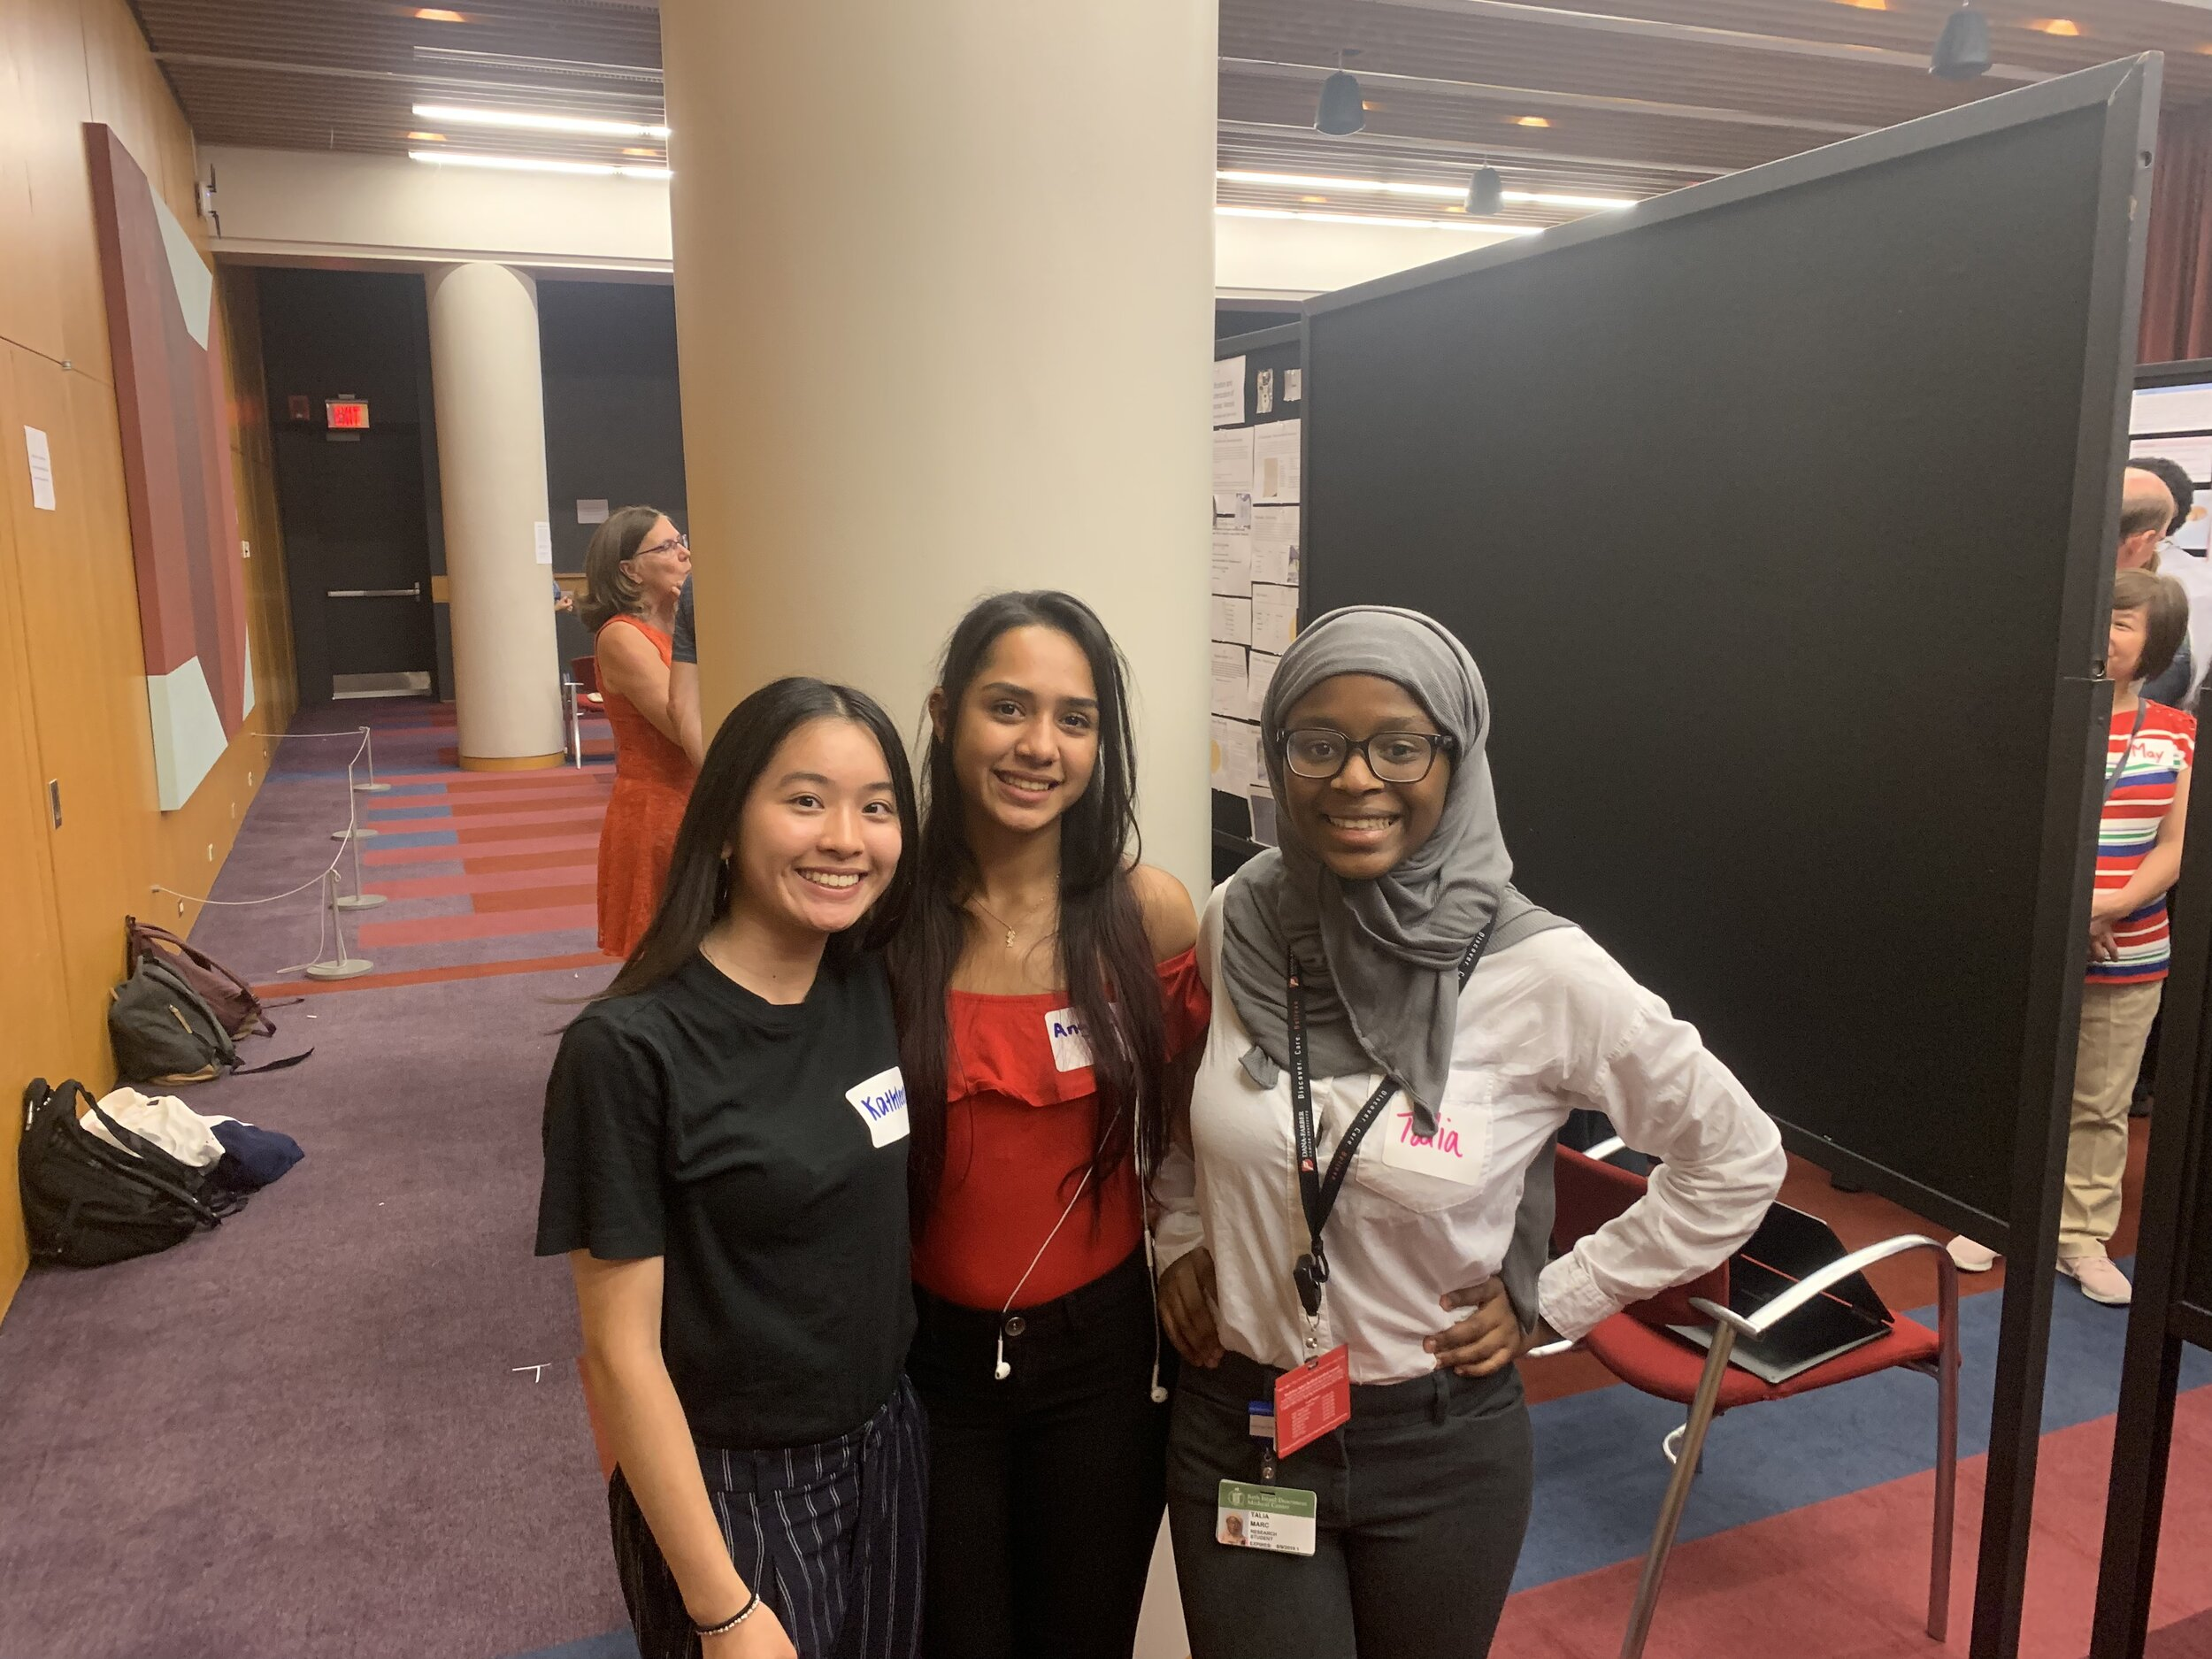 Kathleen Wei (left), Angelys Matos (center), and Talia Marc (right) sharing good times after presenting on their second year lab internships at the symposium.